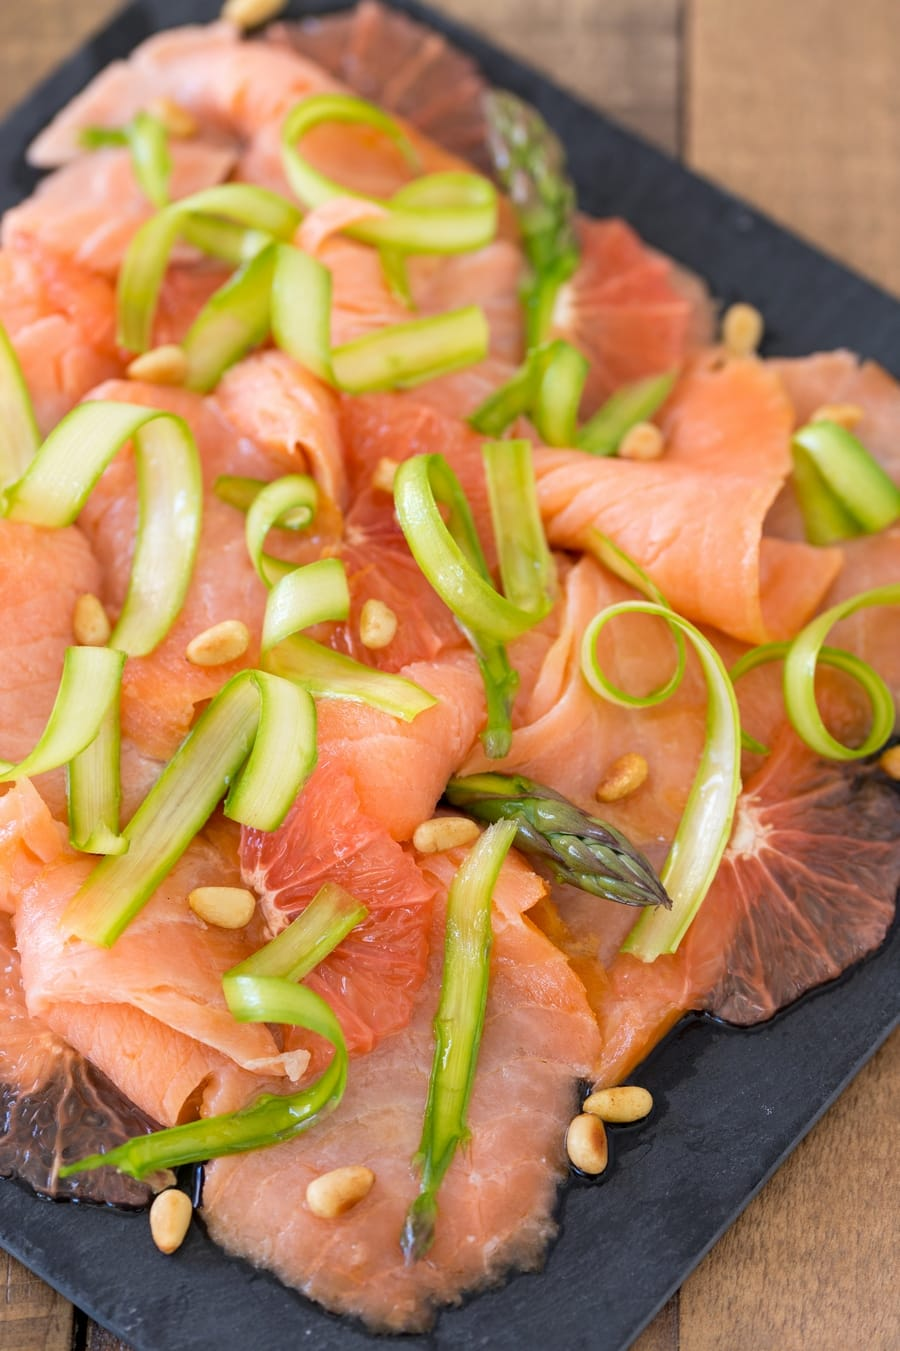 Raw asparagus salmon carpaccio with thinly sliced red grapefruit.